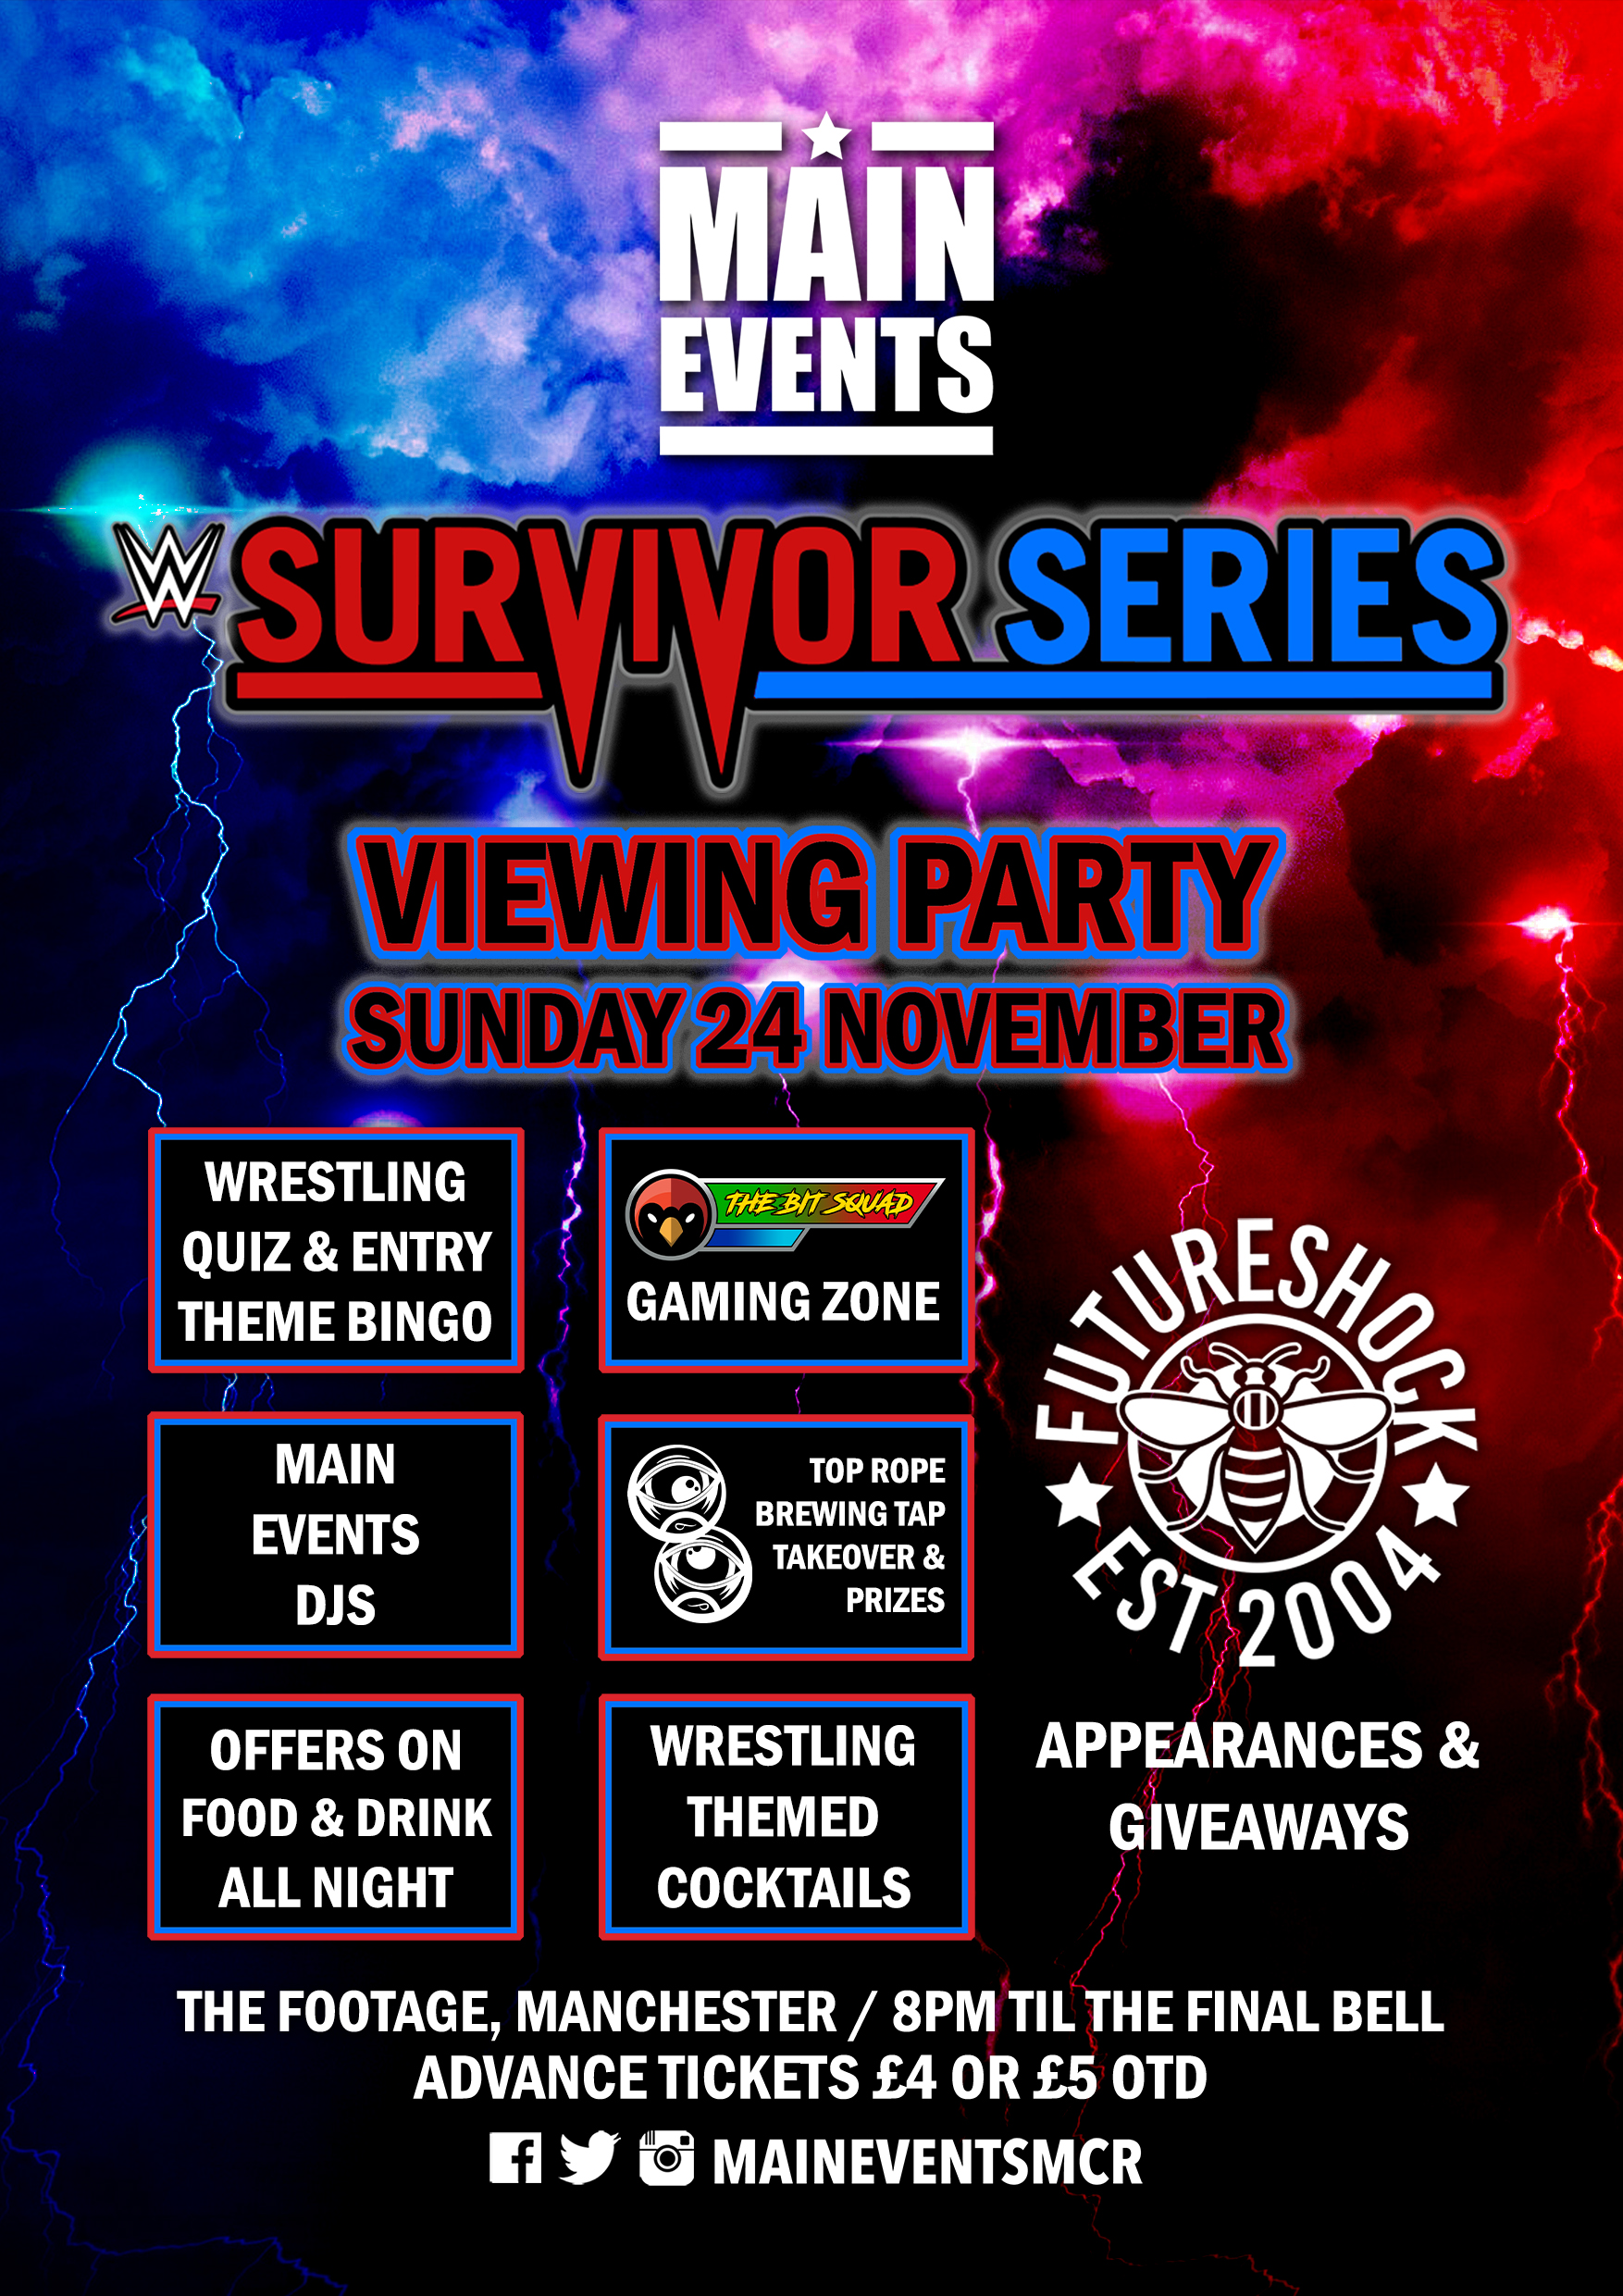 Main Events - Survivor Series 2019 Viewing Party Manchester - Footage Manchester